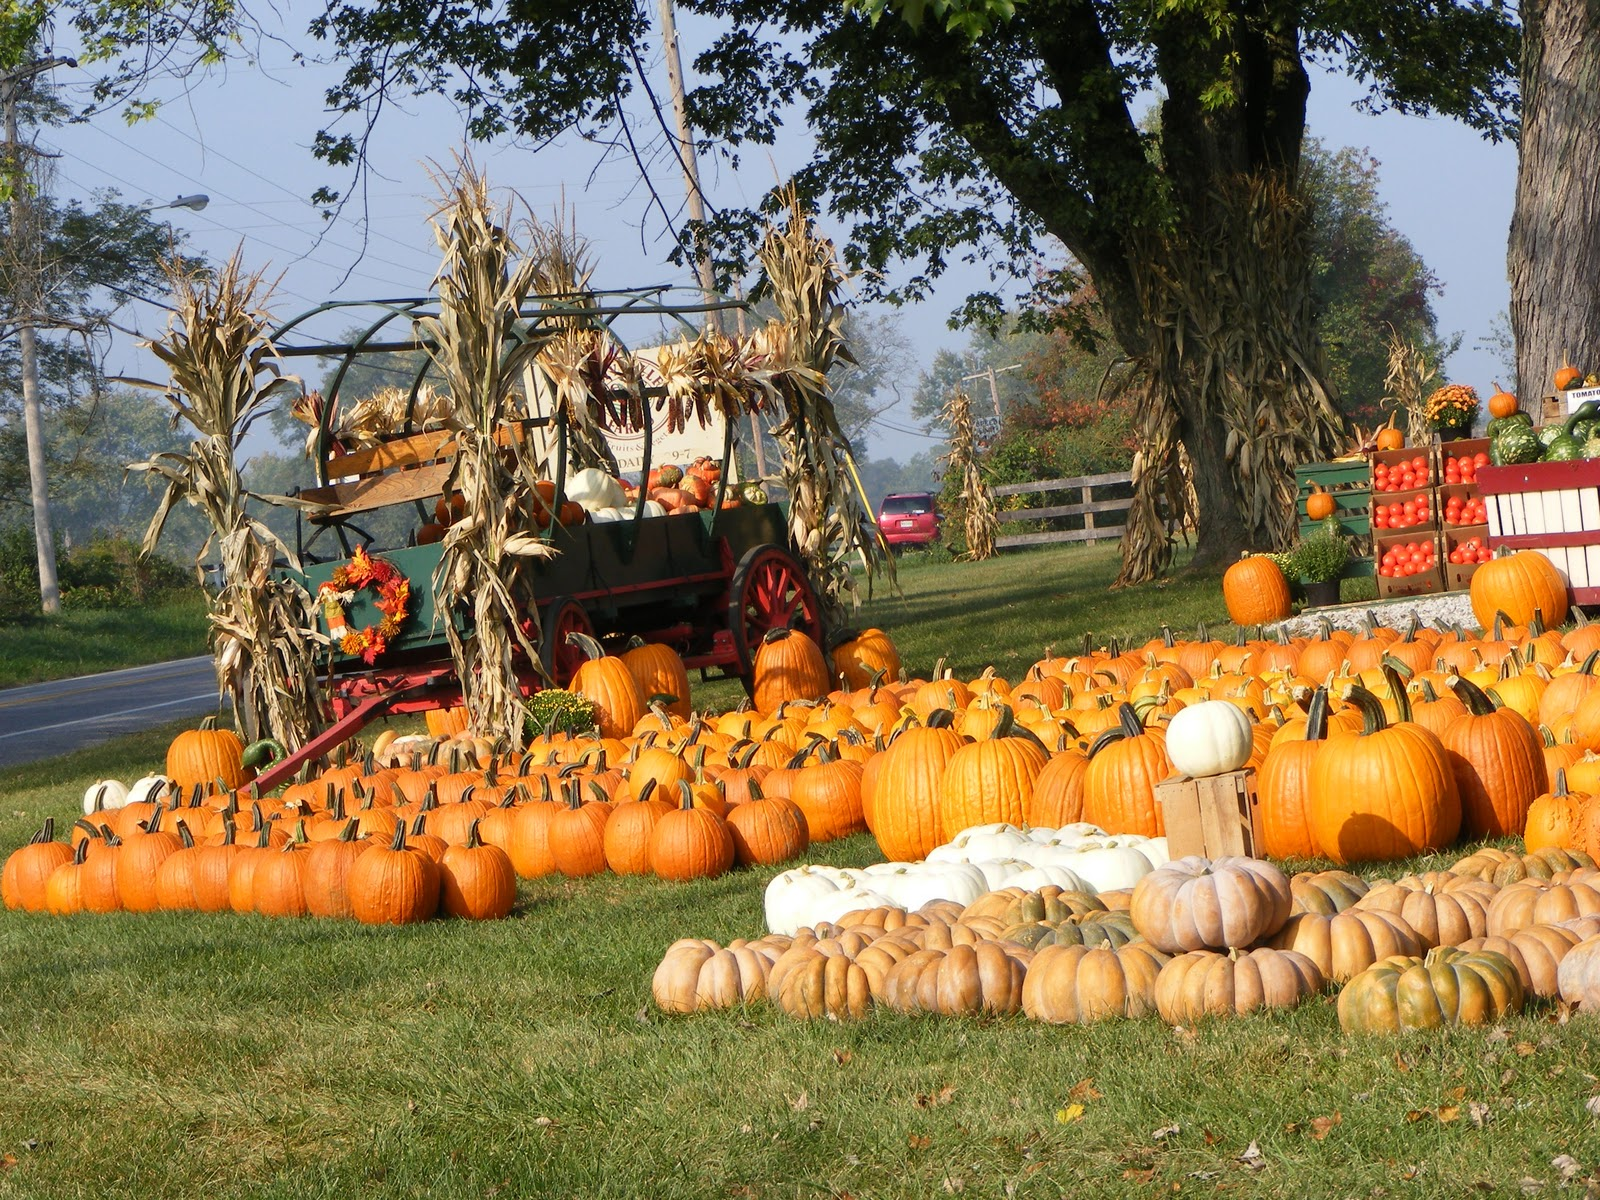 pumpkin patch Hall's pumpkin farm and corn maze on hall johnson road in grapevine, texas opening friday, october 2nd, 2015, enjoy a corn maze, hayrides, pumpkin patch, gourds, hay bales, and corn stalks galore.